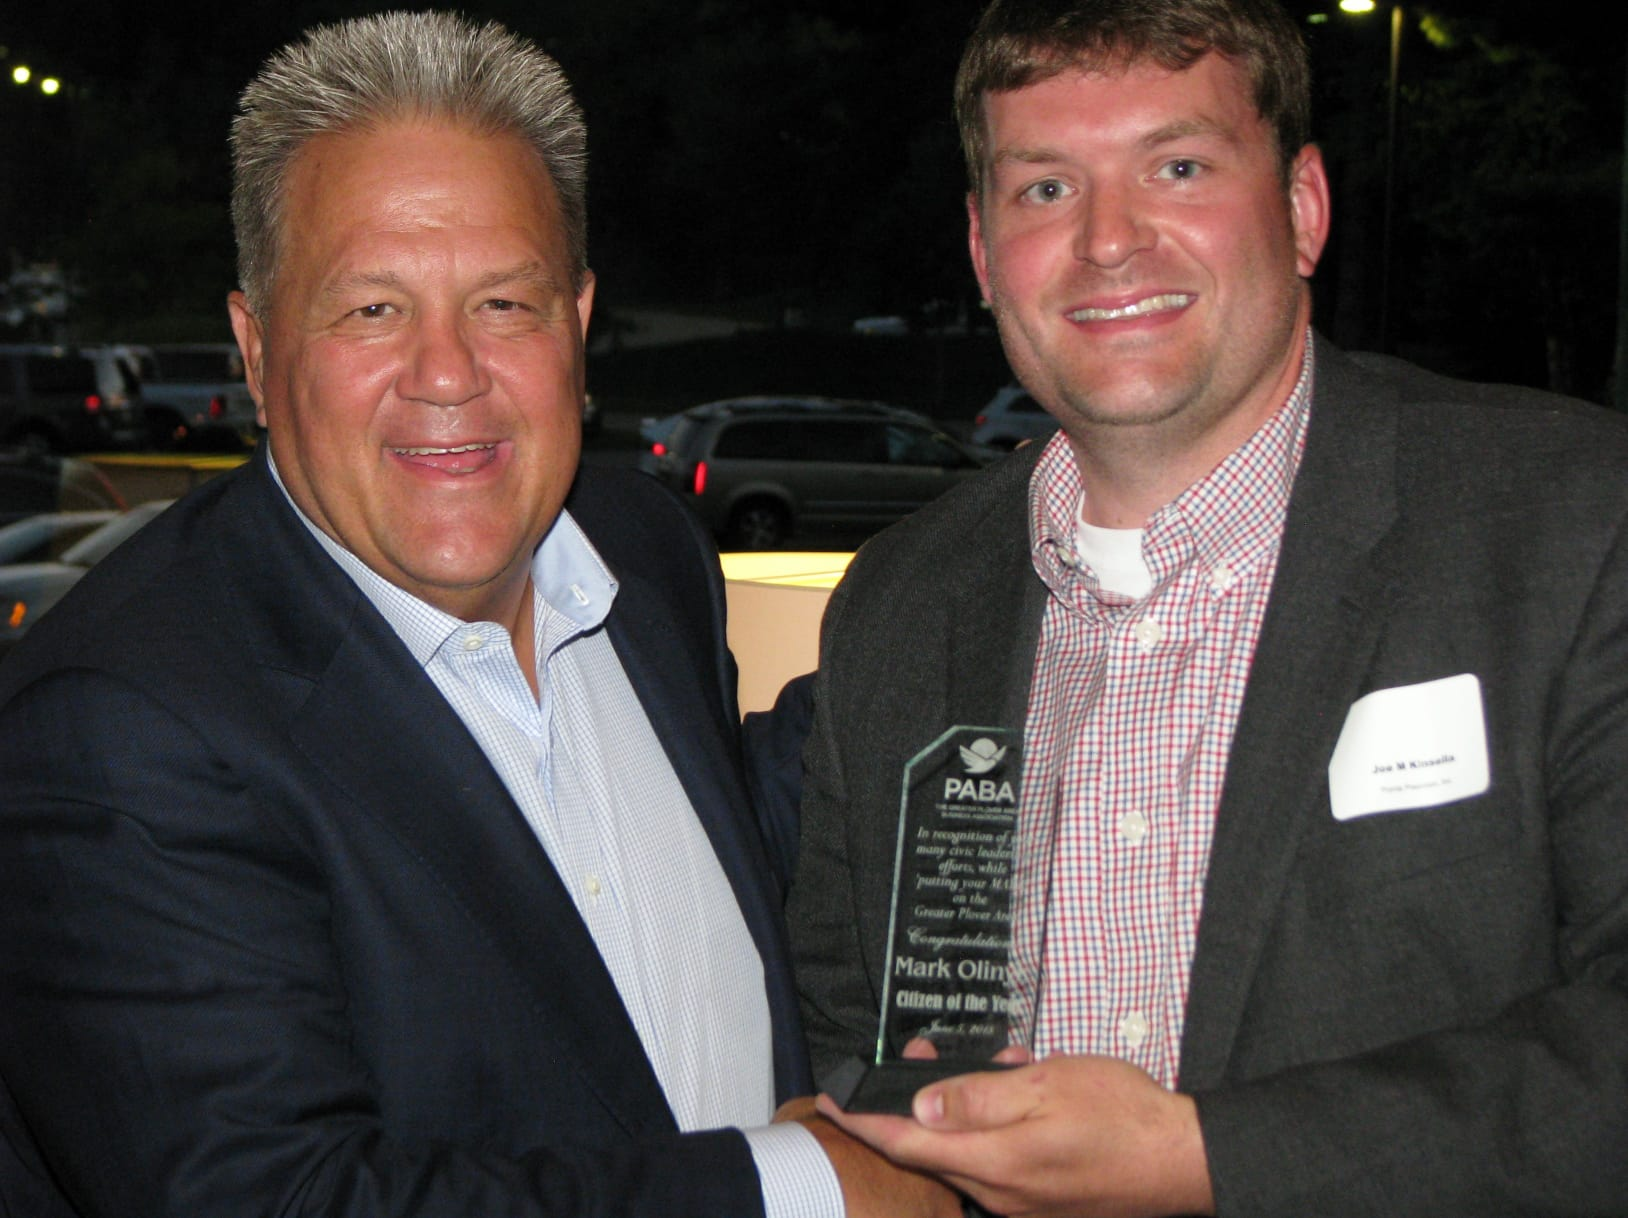 Mark-Olinyk-accepts-Citizen-of-the-Year-from-Joe-M.-Kinsella.jpg